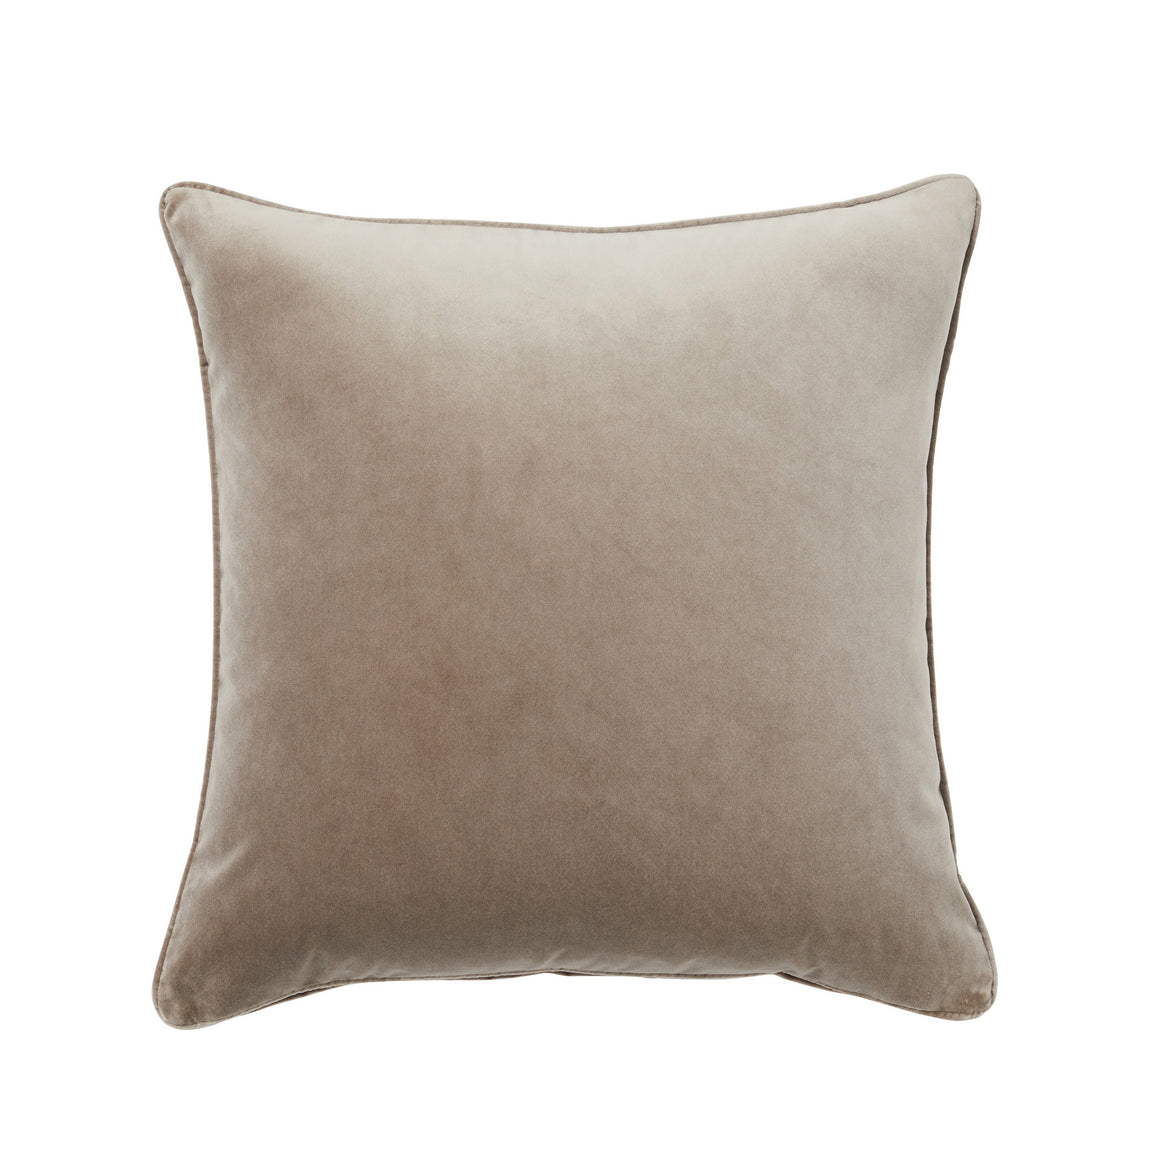 Zoe Truffle Cushion